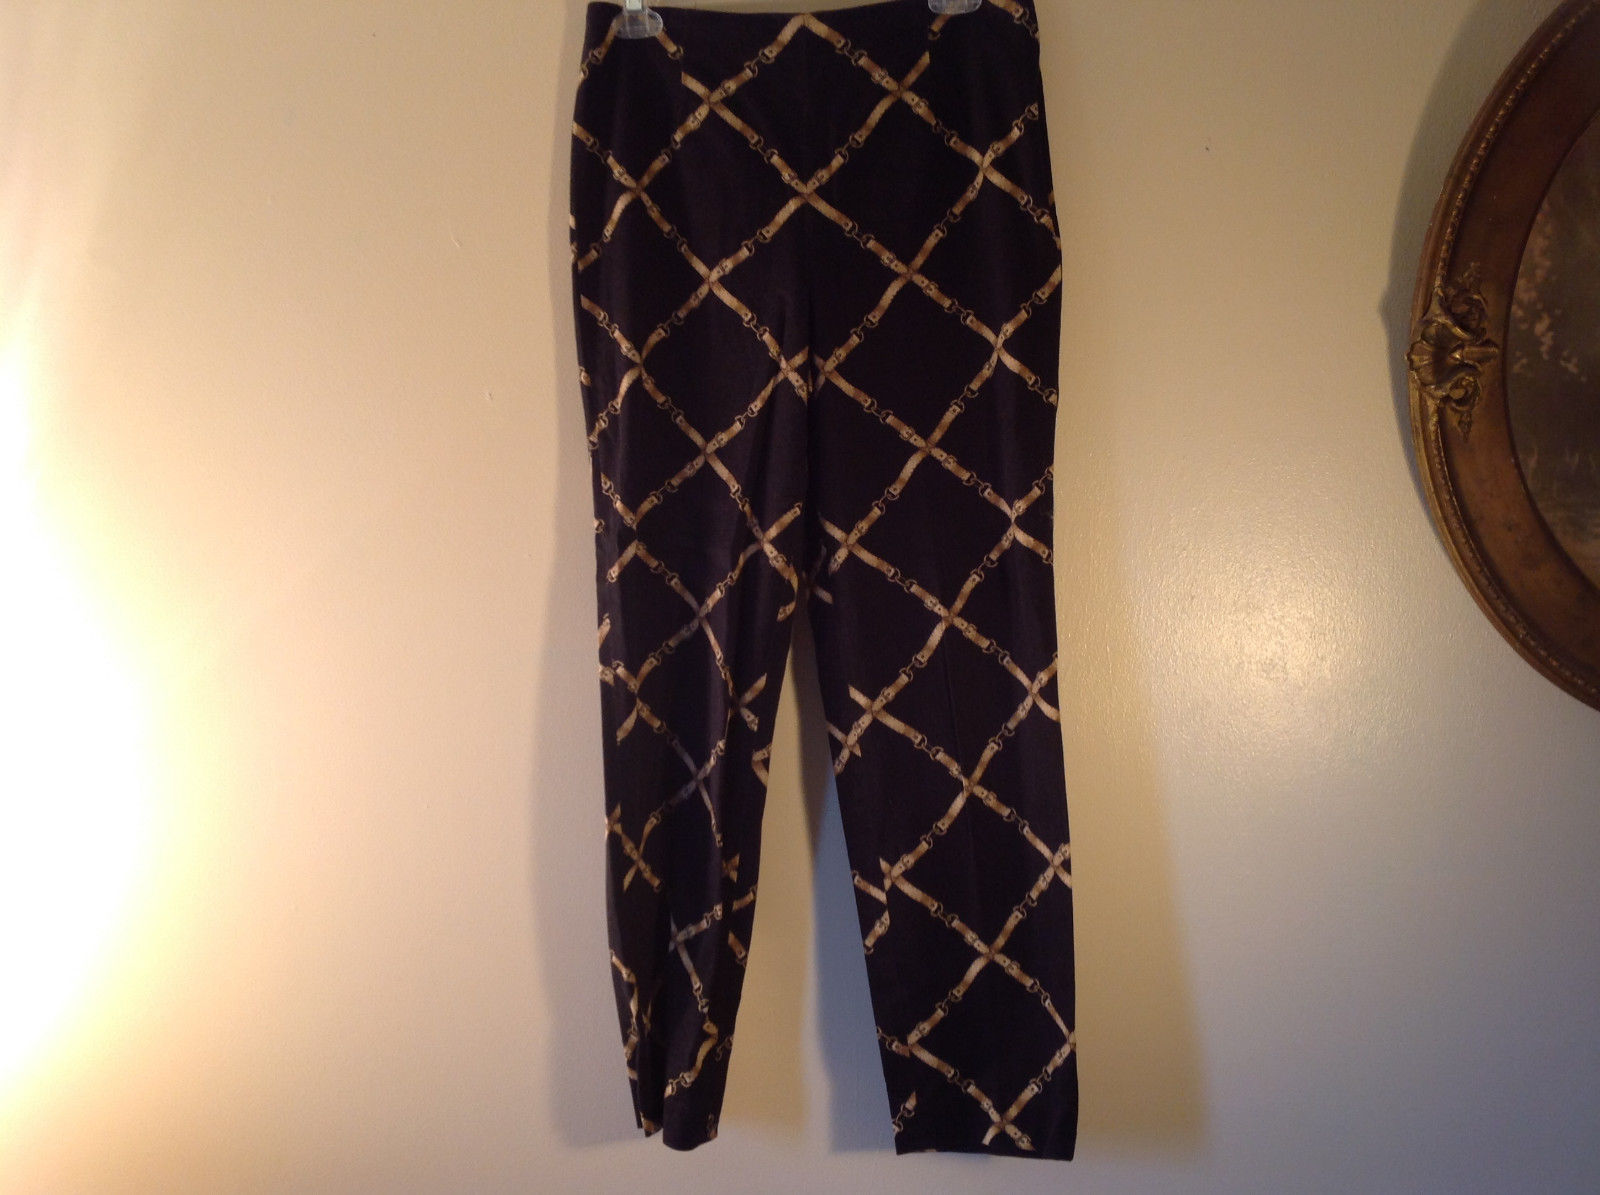 Talbots Size 8 Black with Belt Pattern Casual Pants Zipper Closure on Side